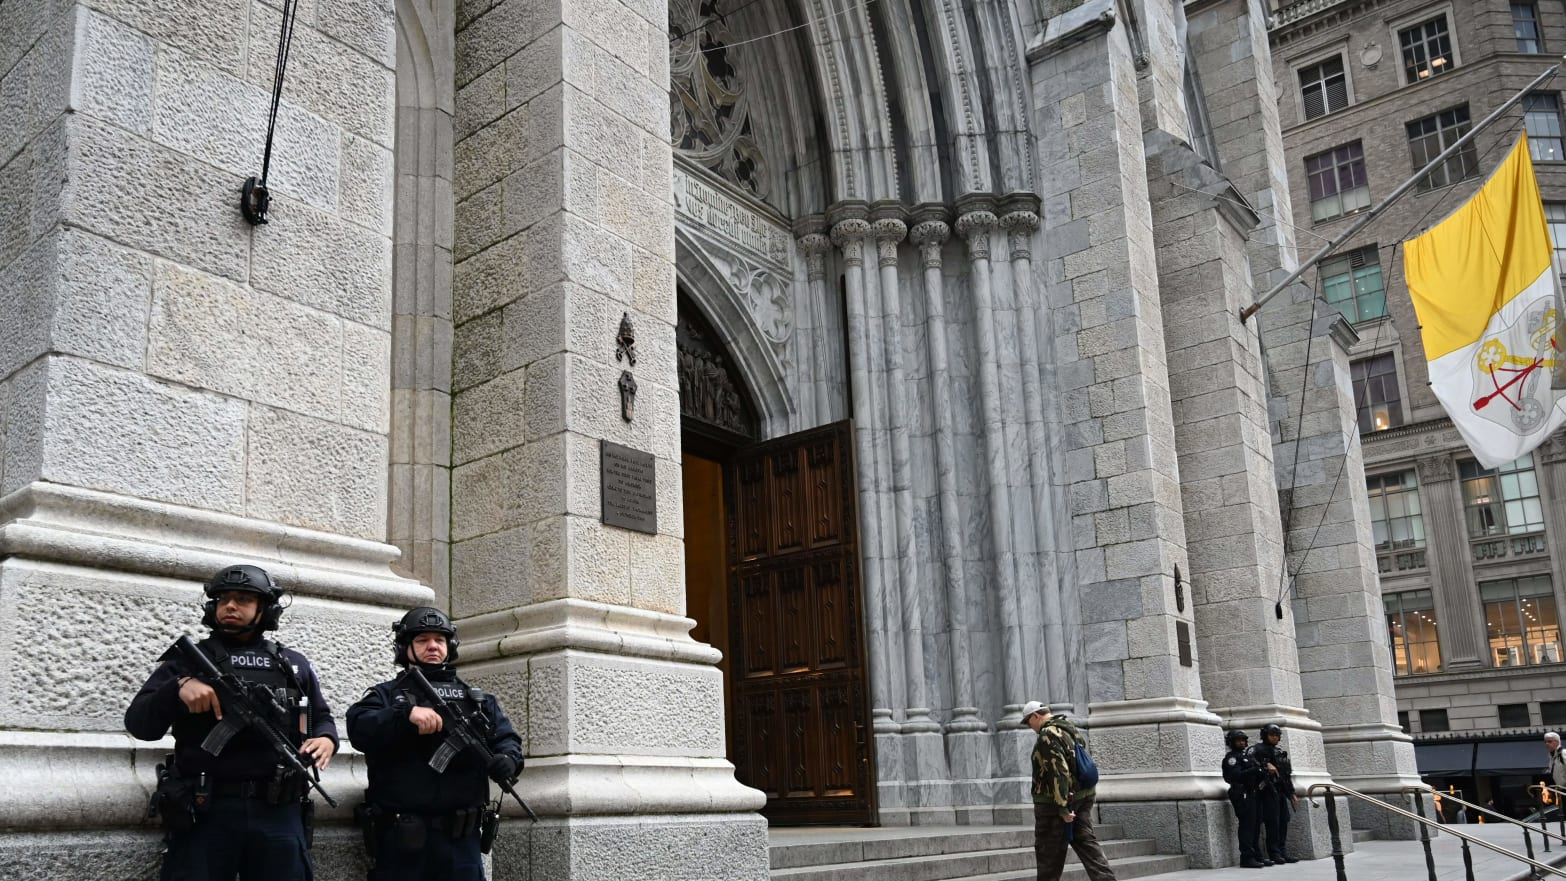 St. Patrick's: Marc Lamparello, Charged With Attempting to Set Fire to Iconic Church, Had Been Arrested at Newark Cathedral on Monday